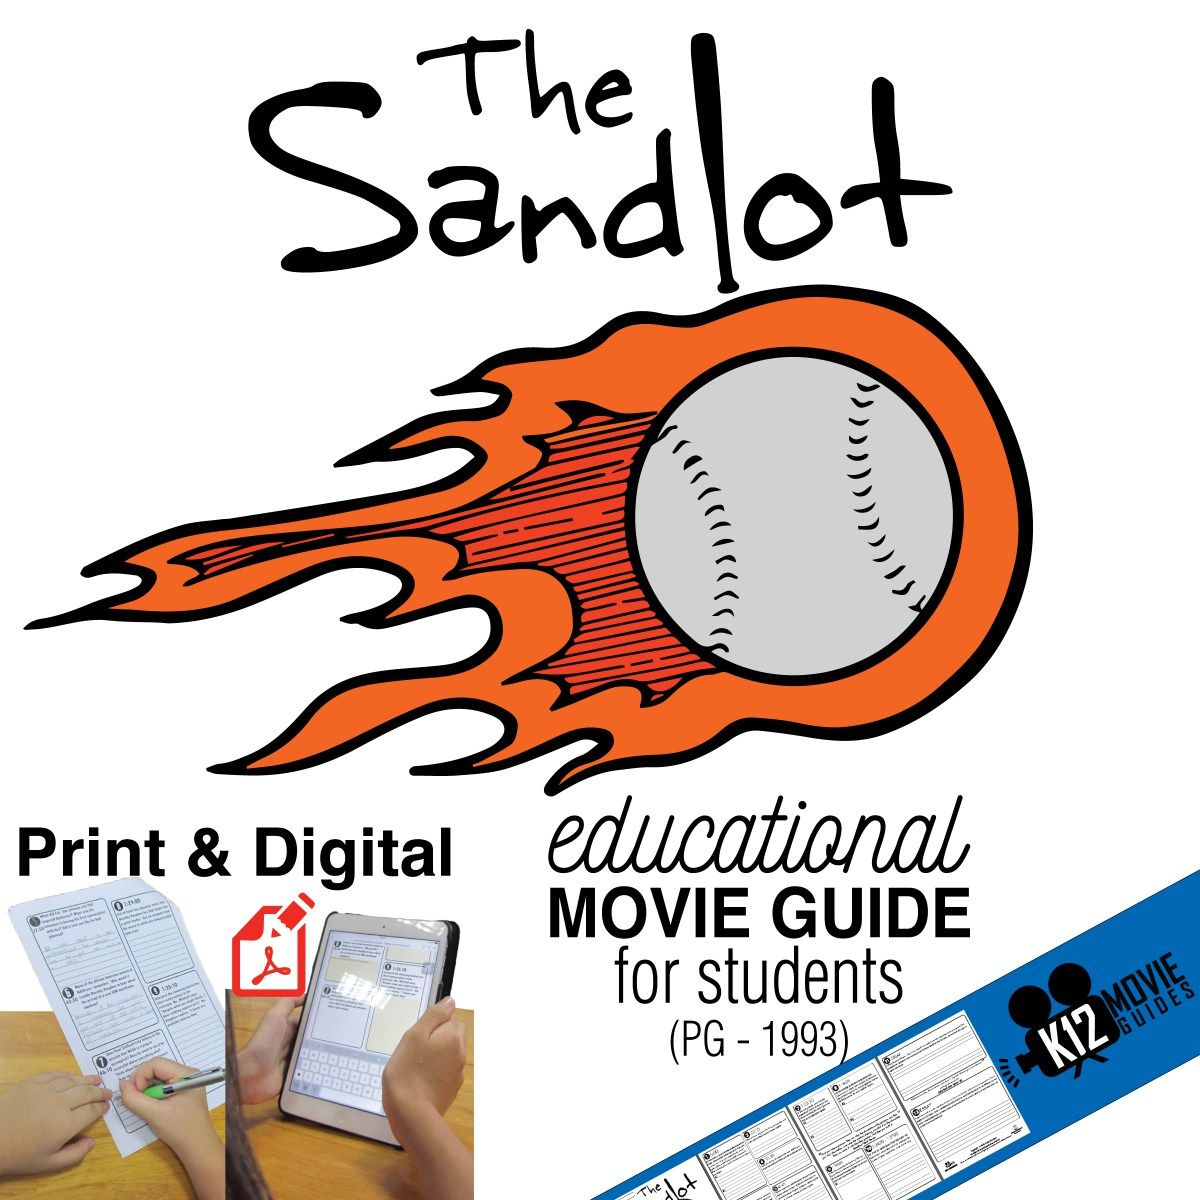 The Sandlot Movie Guide Questions Worksheet Pg